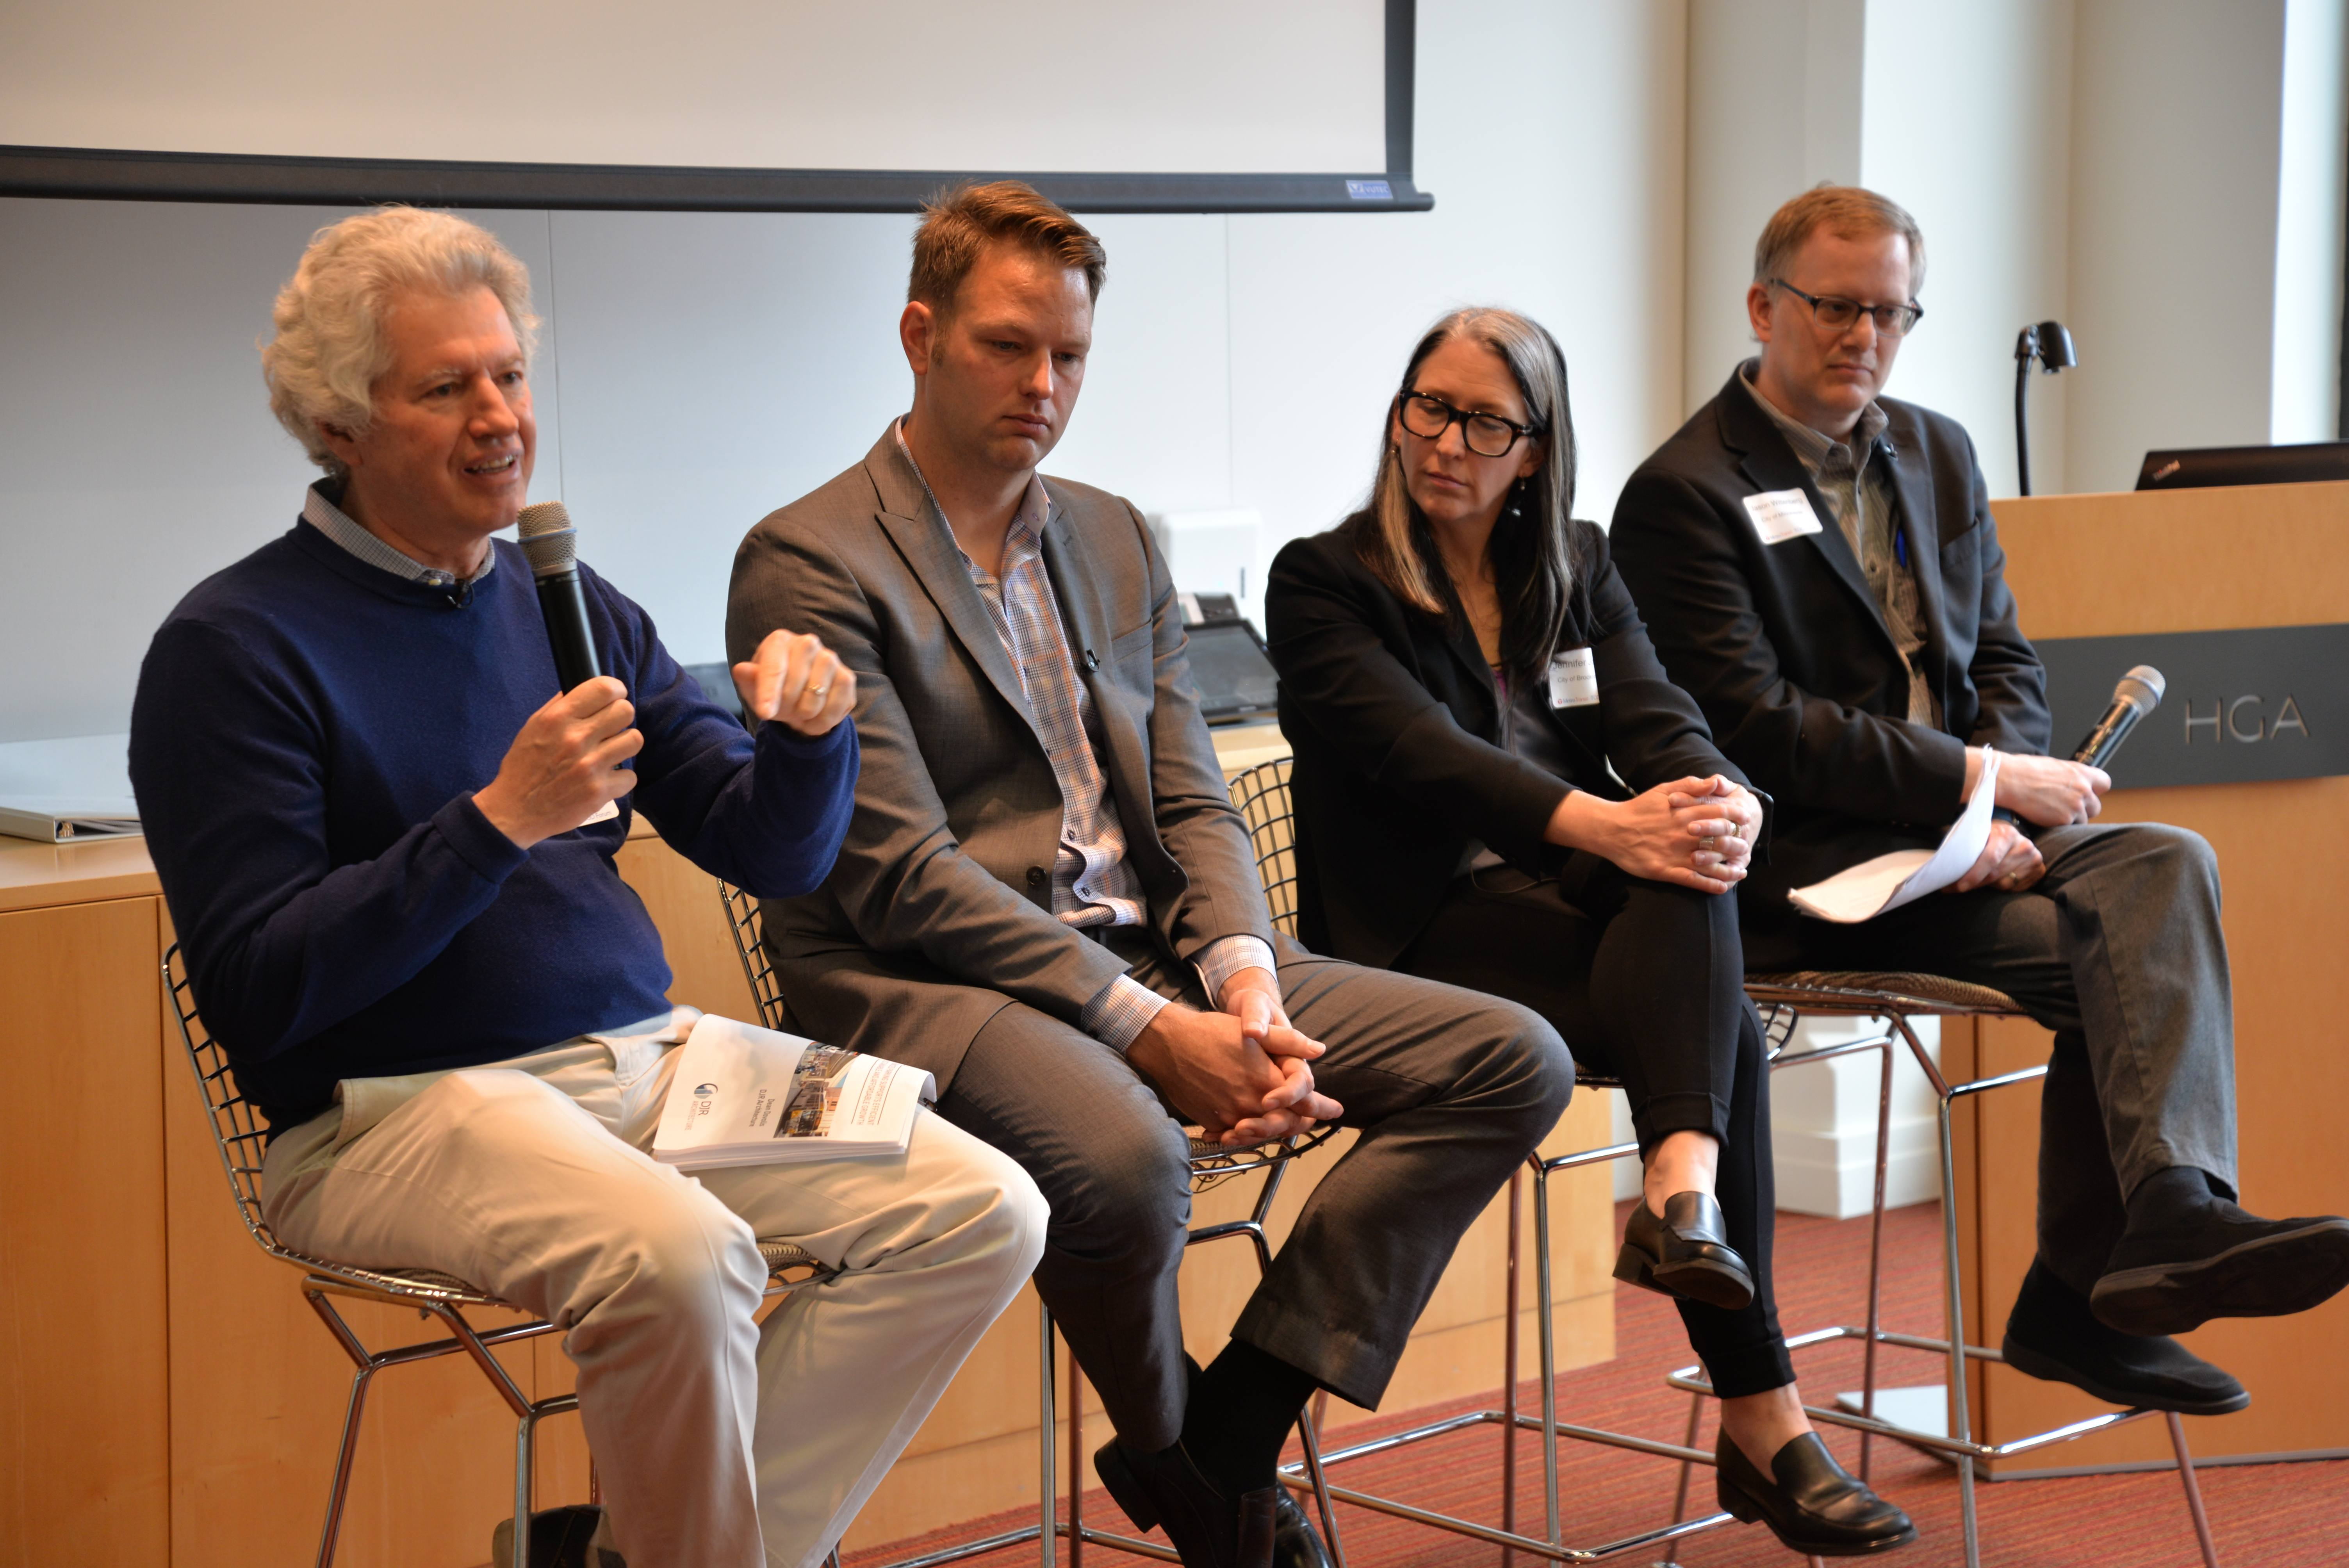 From left to right: Dean Dovolis, founder, CEO and principal at Minneapolis-based DJR Architecture, Inc.; Robb Lubenow, co-founder of Minneapolis-based Yellow Tree Development; Jennifer Jordan, Senior Project Manager for the City of Brooklyn; and Jason Wittenberg, the Manager of Land Use, Design and Preservation for the City of Minneapolis.